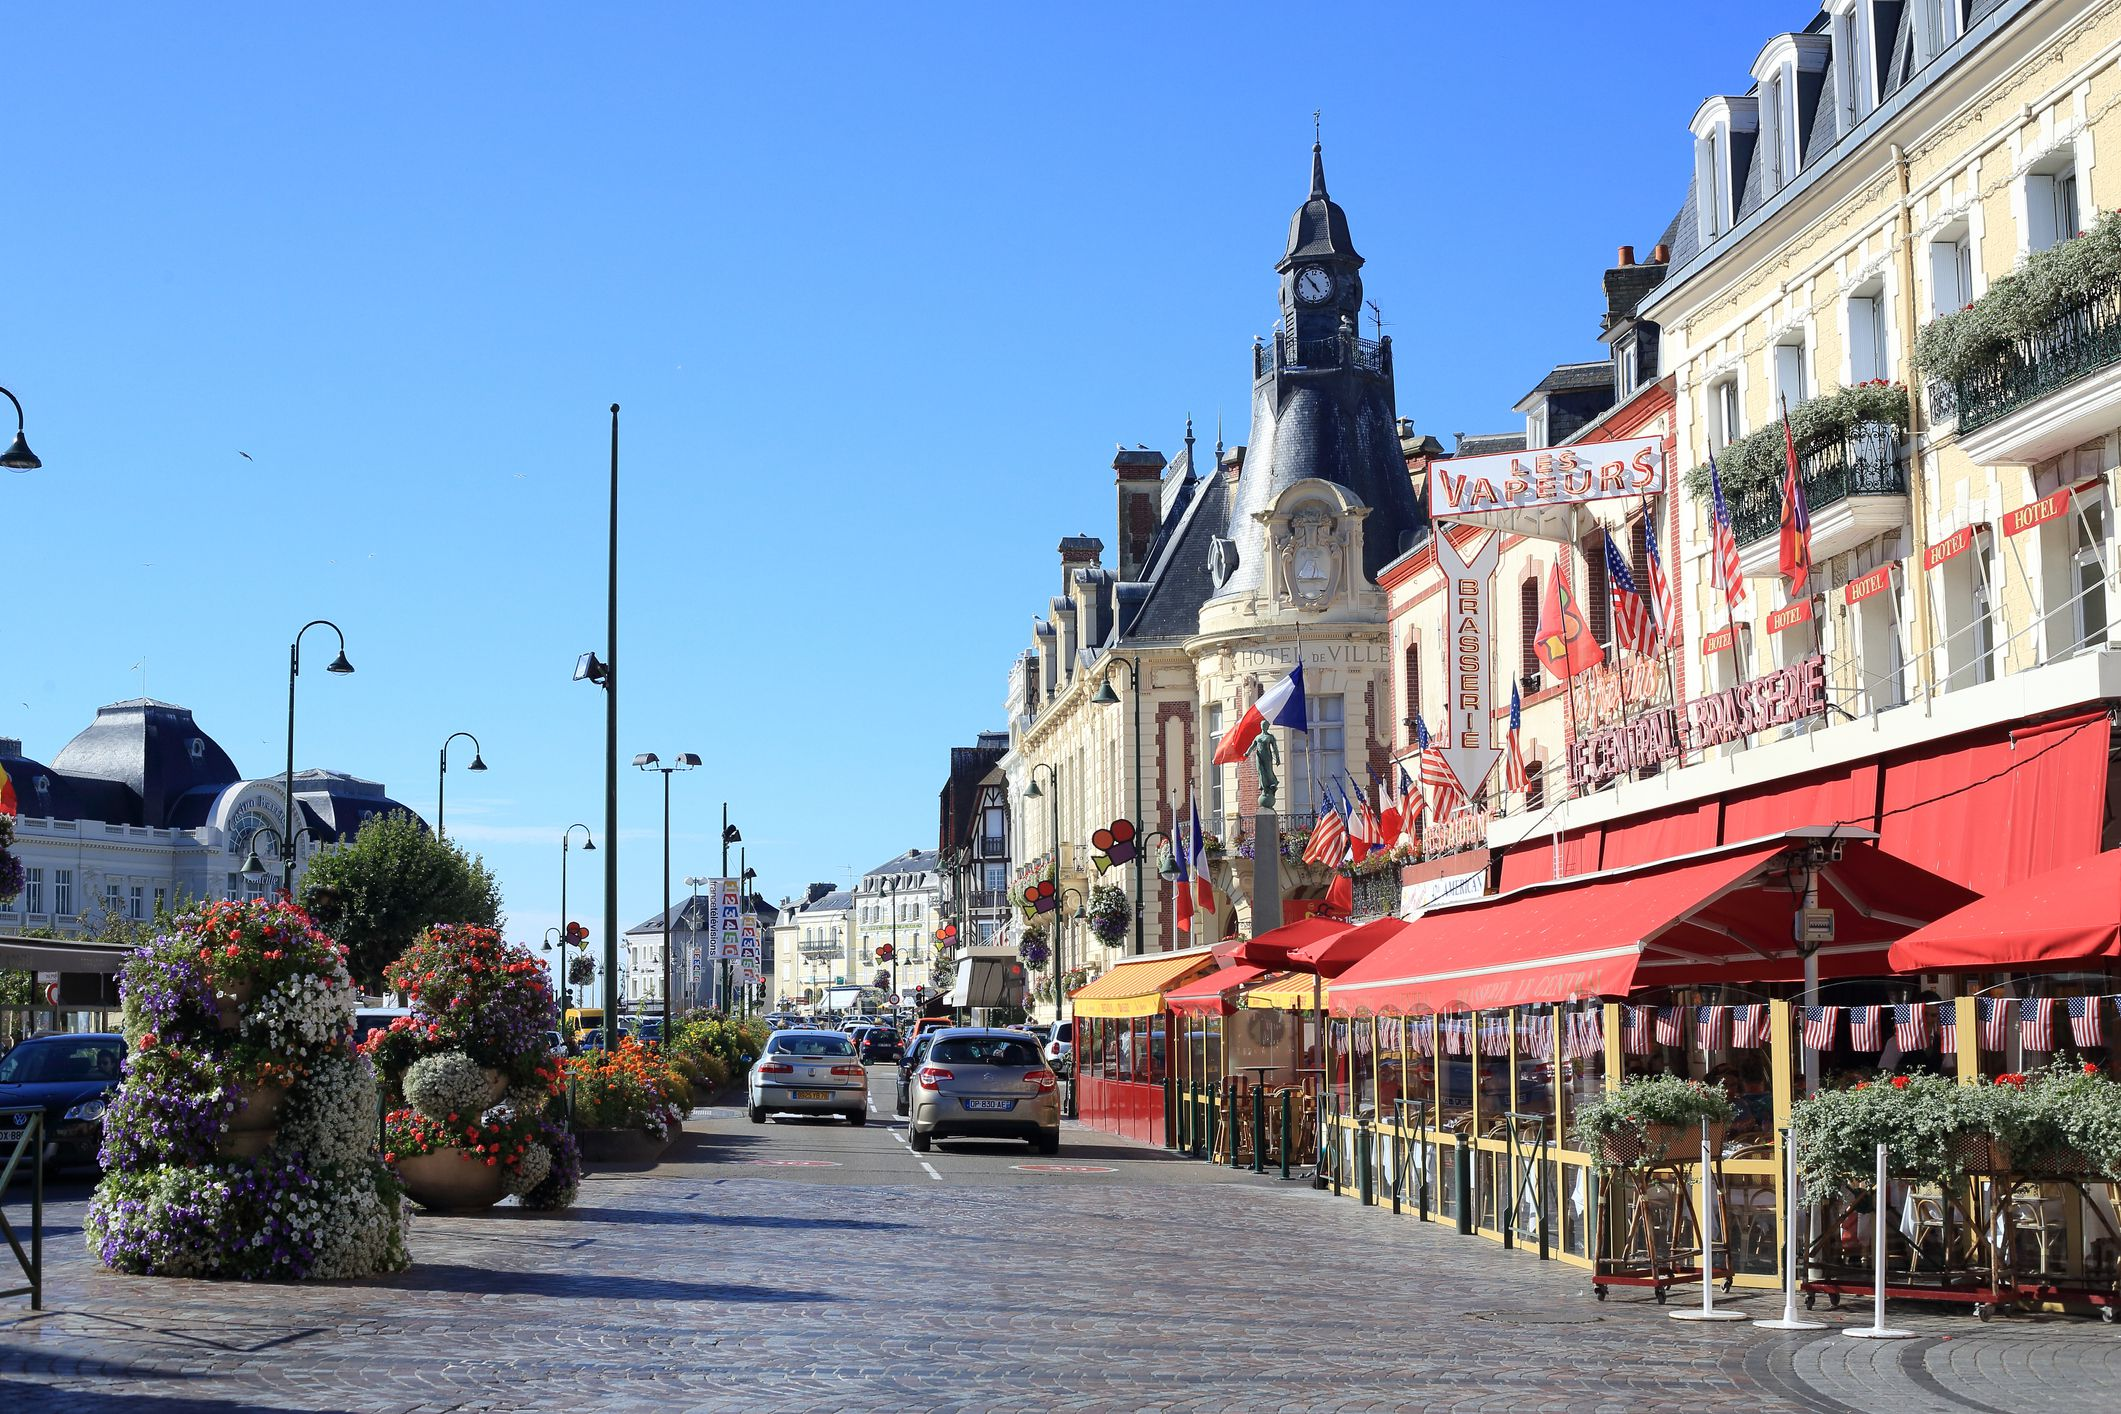 DEAUVILLE Normandy Trips To Travel By Train